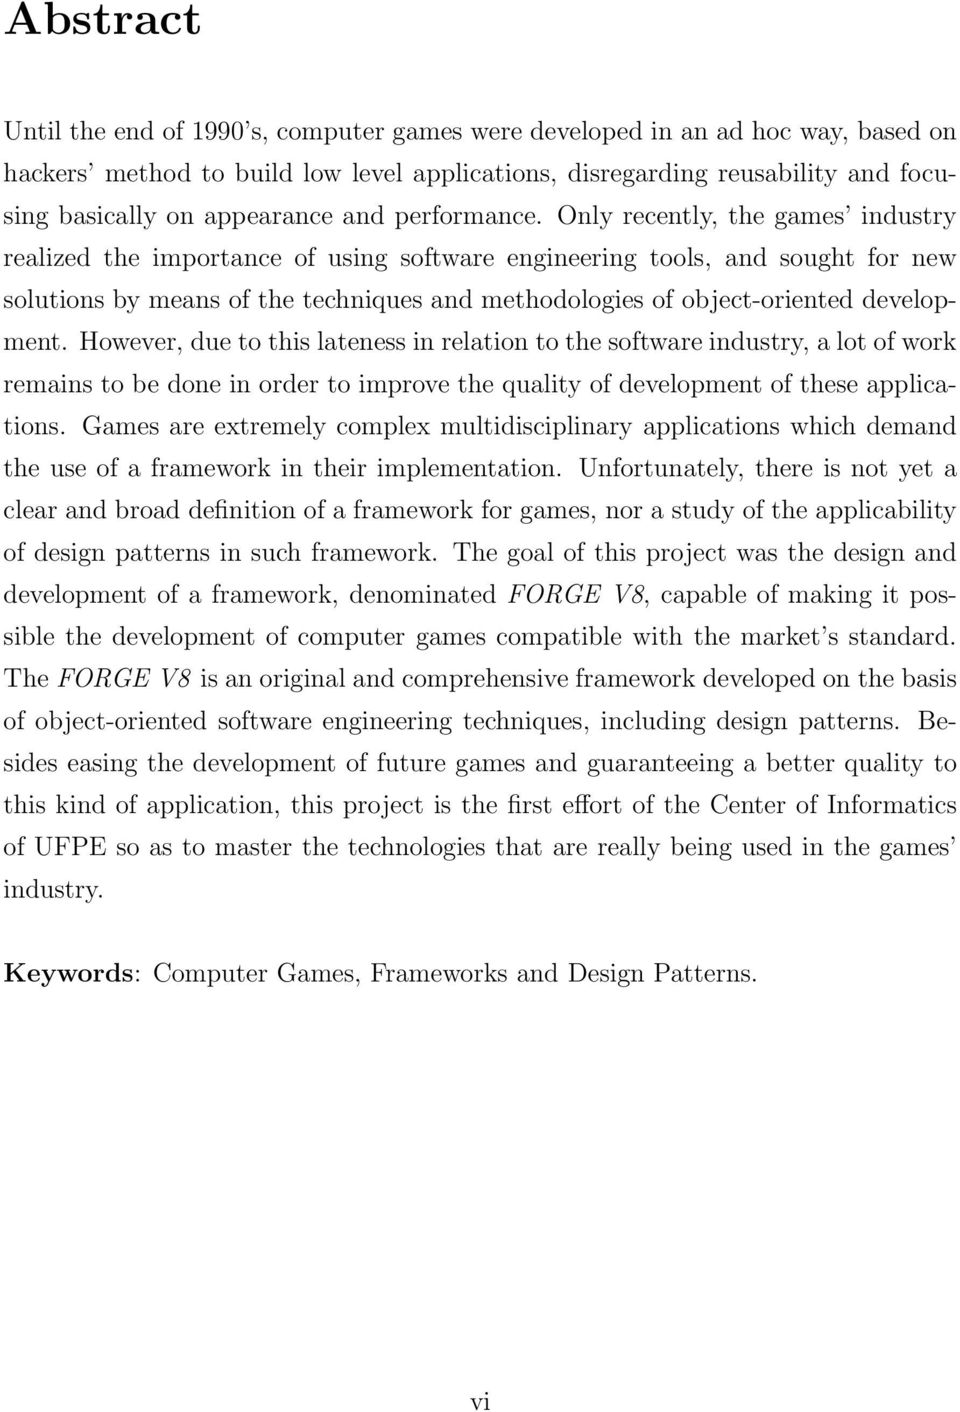 Only recently, the games industry realized the importance of using software engineering tools, and sought for new solutions by means of the techniques and methodologies of object-oriented development.